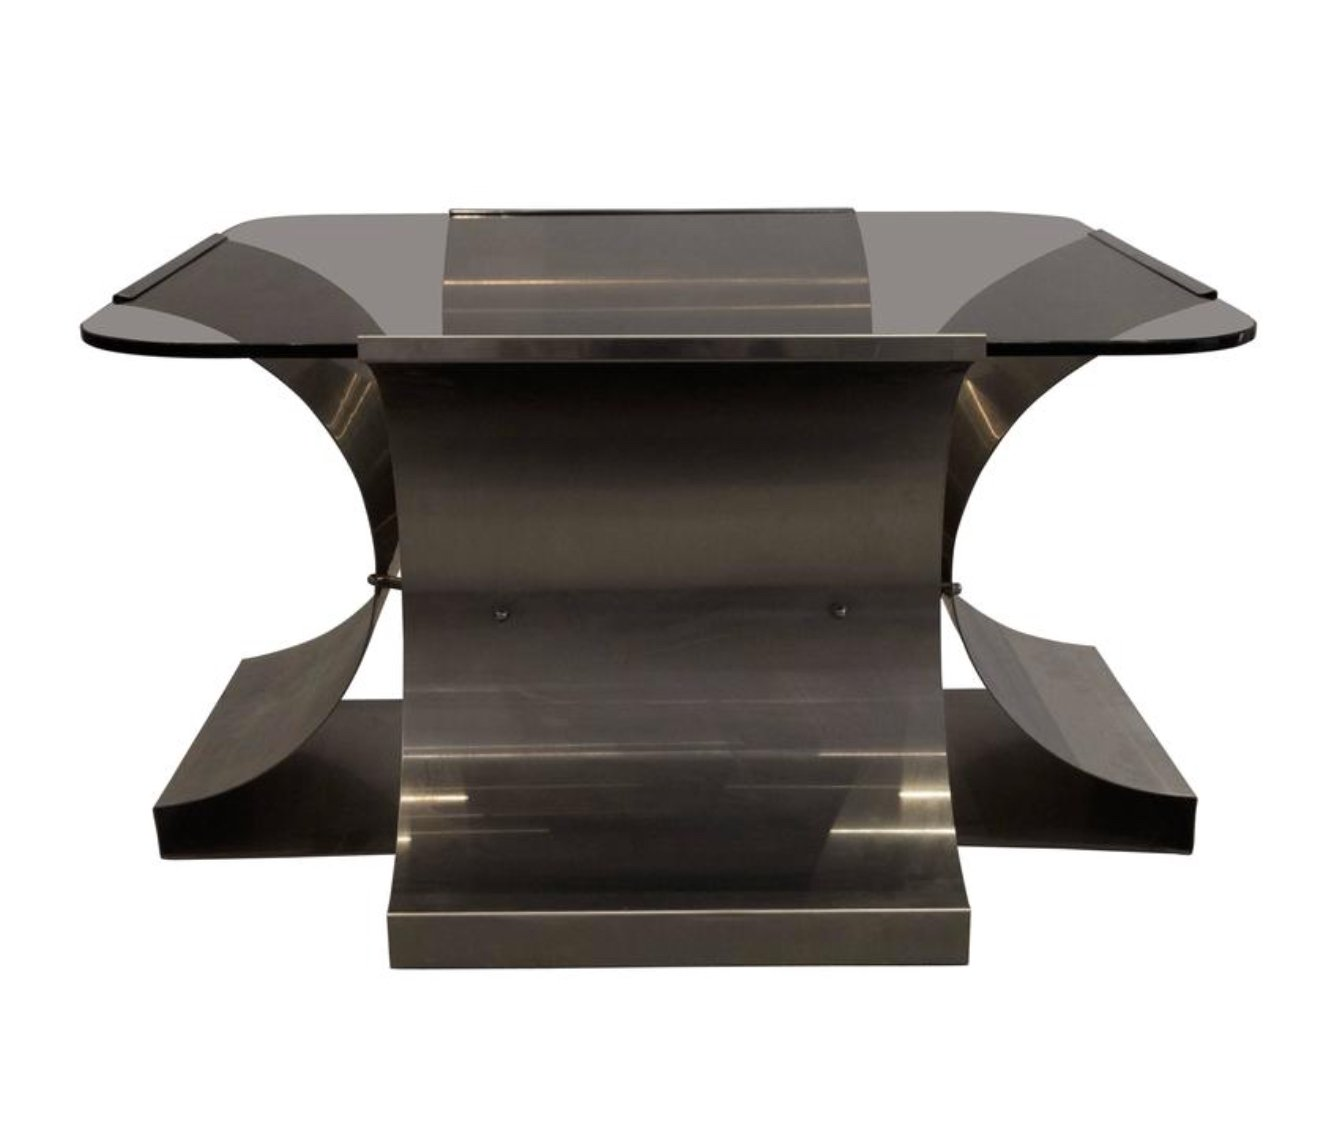 French stainless steel and glass coffee table by franois monnet french stainless steel and glass coffee table by franois monnet for kappa 1970s geotapseo Images